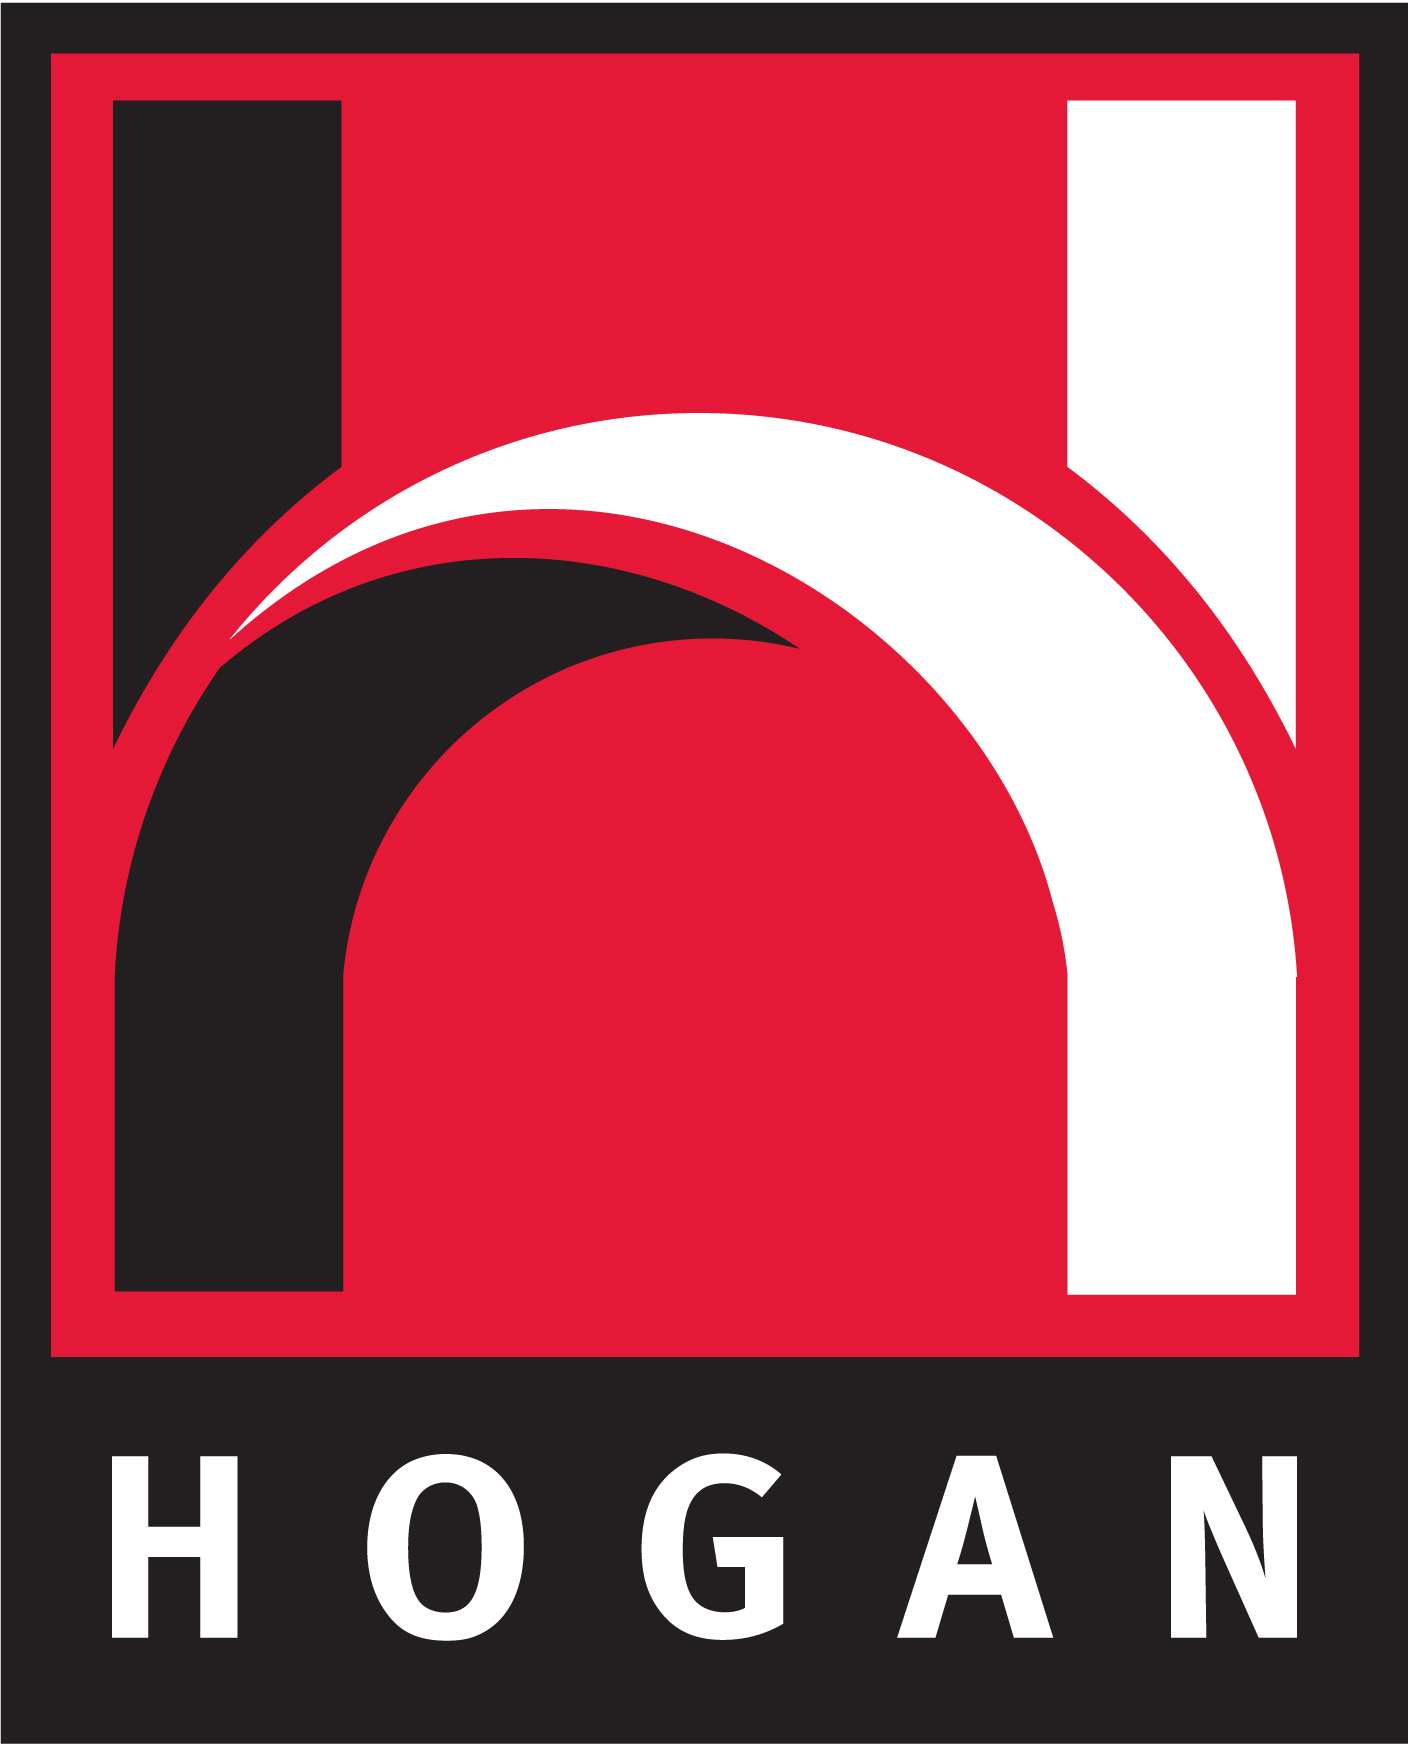 Hogan Motives, Values and Preferences Inventory (MVPI)